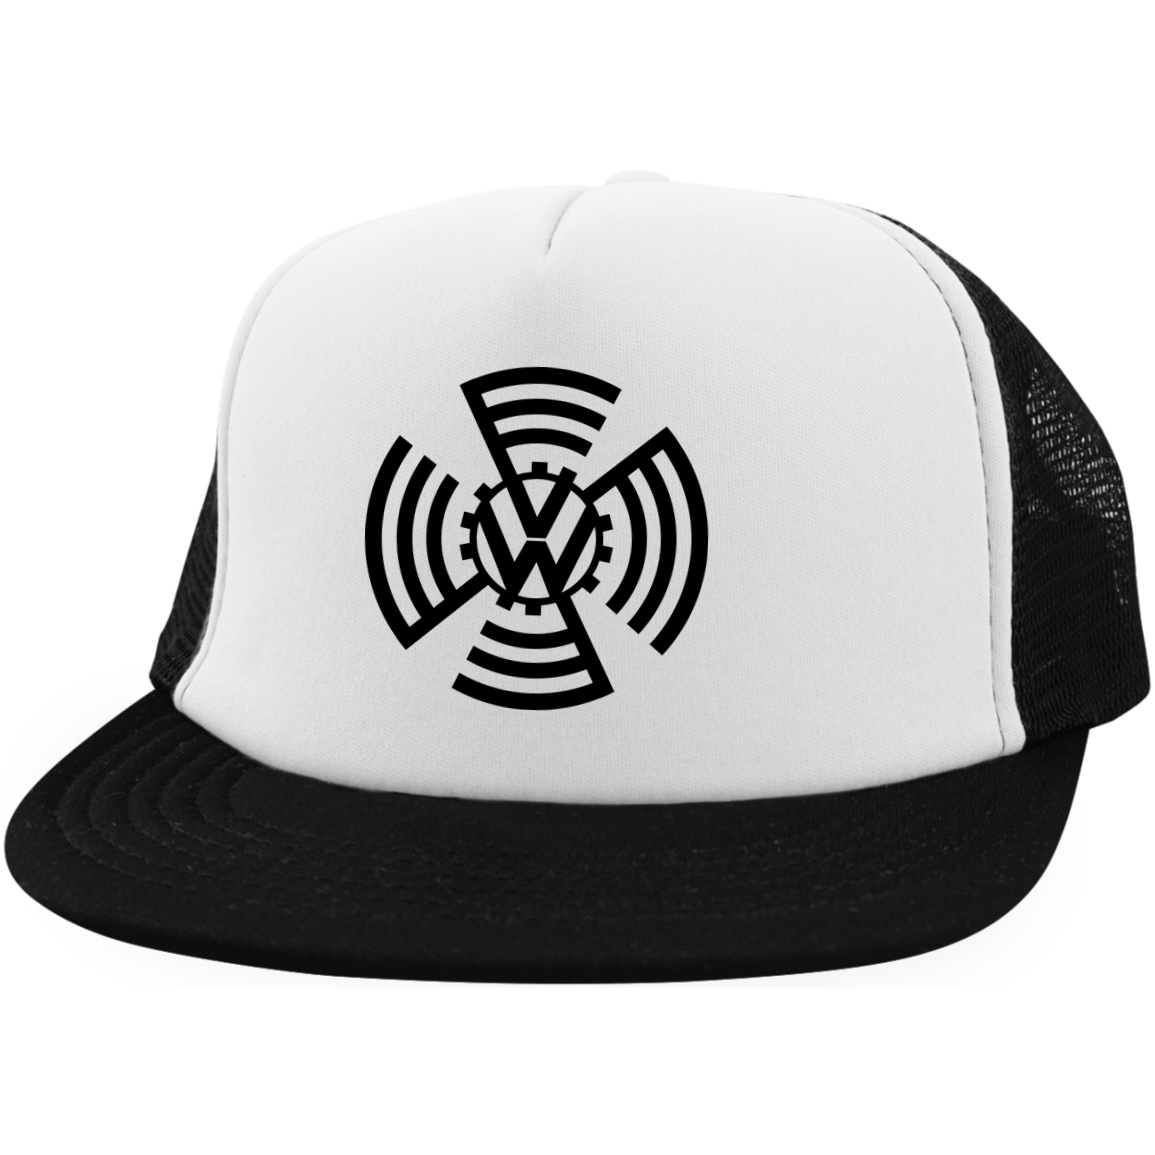 KDF Embroidered Mesh Trucker, - Aircooled VW - Vintage Vdub